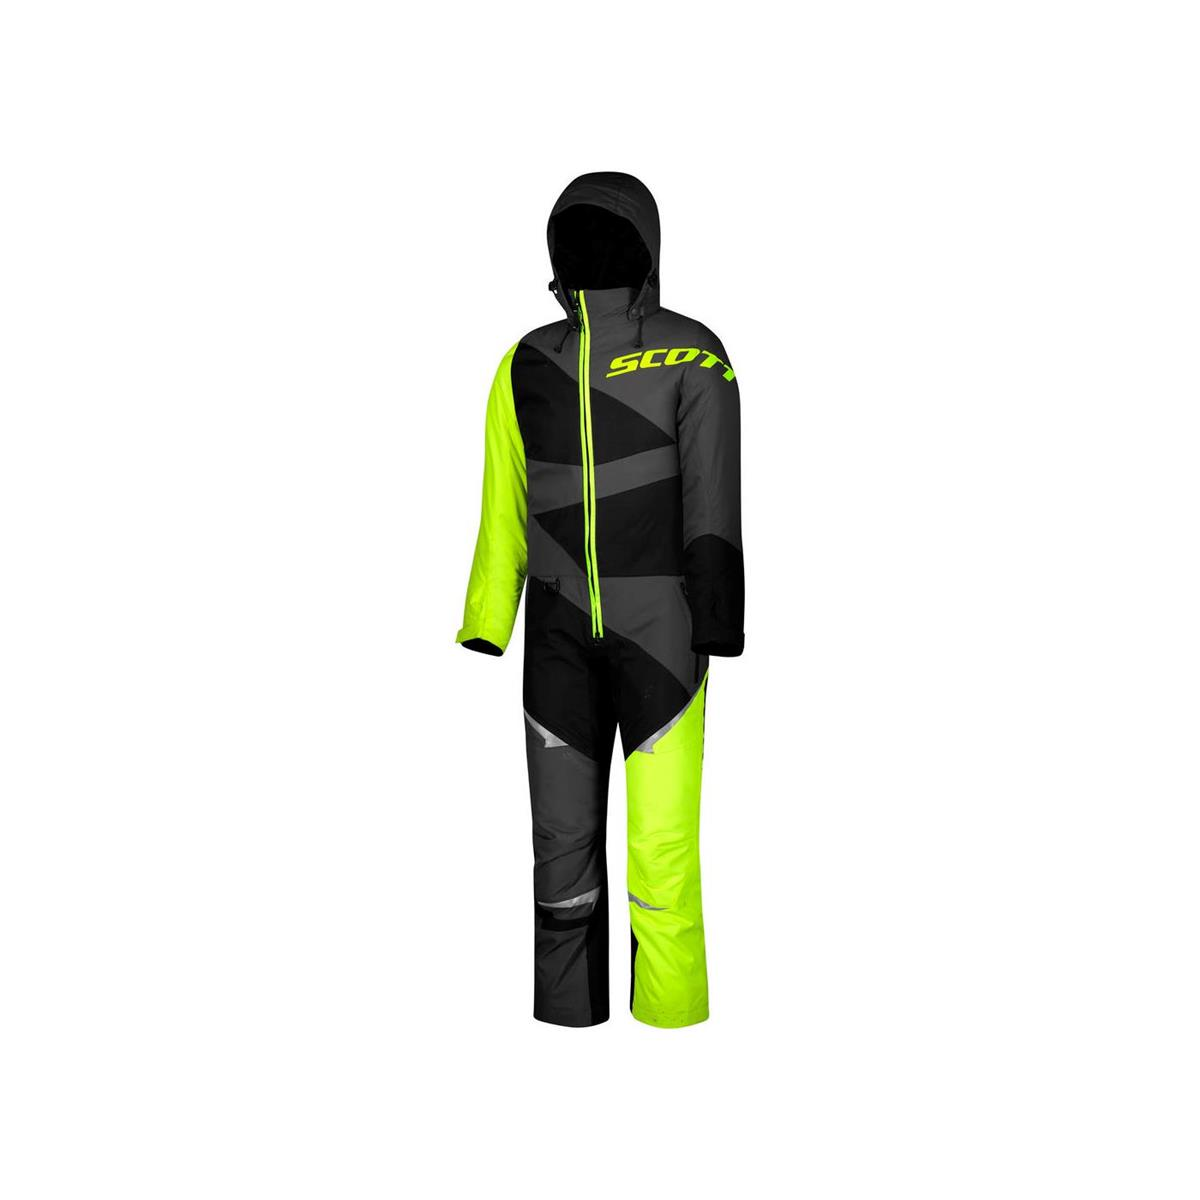 Scott Monosuit DP JR - sort/gul 130cm